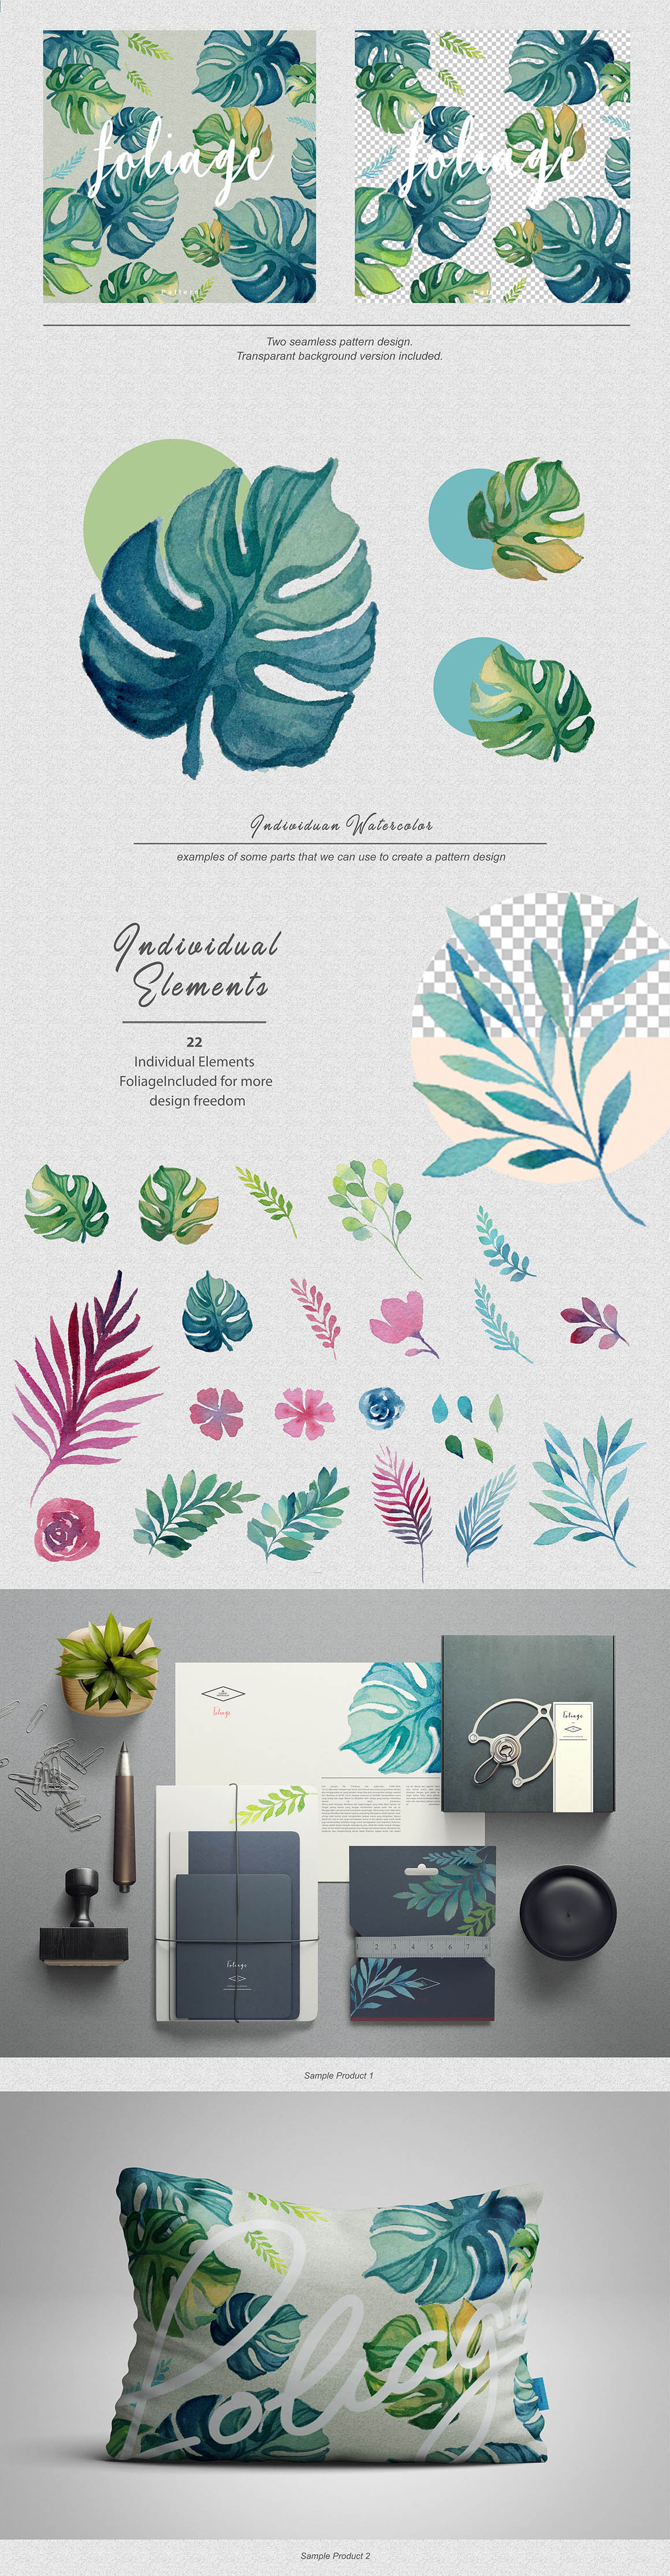 Foliage-watercolor-design-kit-2